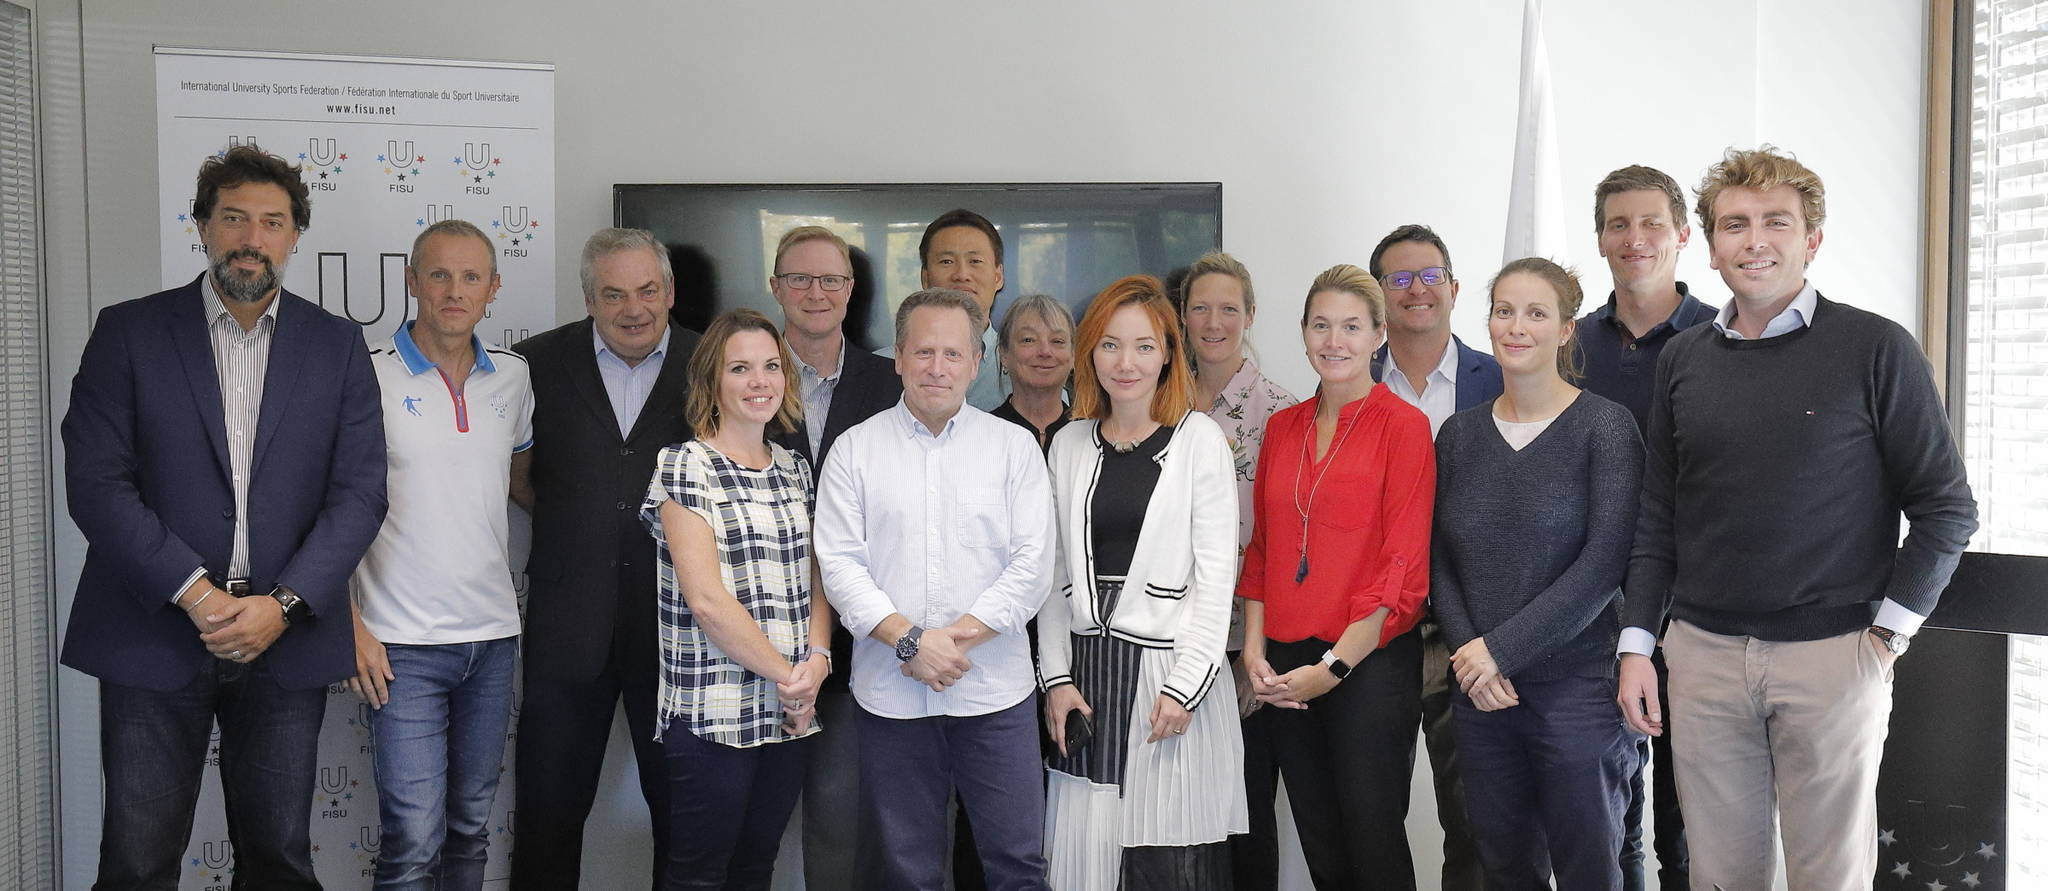 Organisers of the 2023 Winter Universiade met with the International University Sports Federation in Lausanne ©FISU